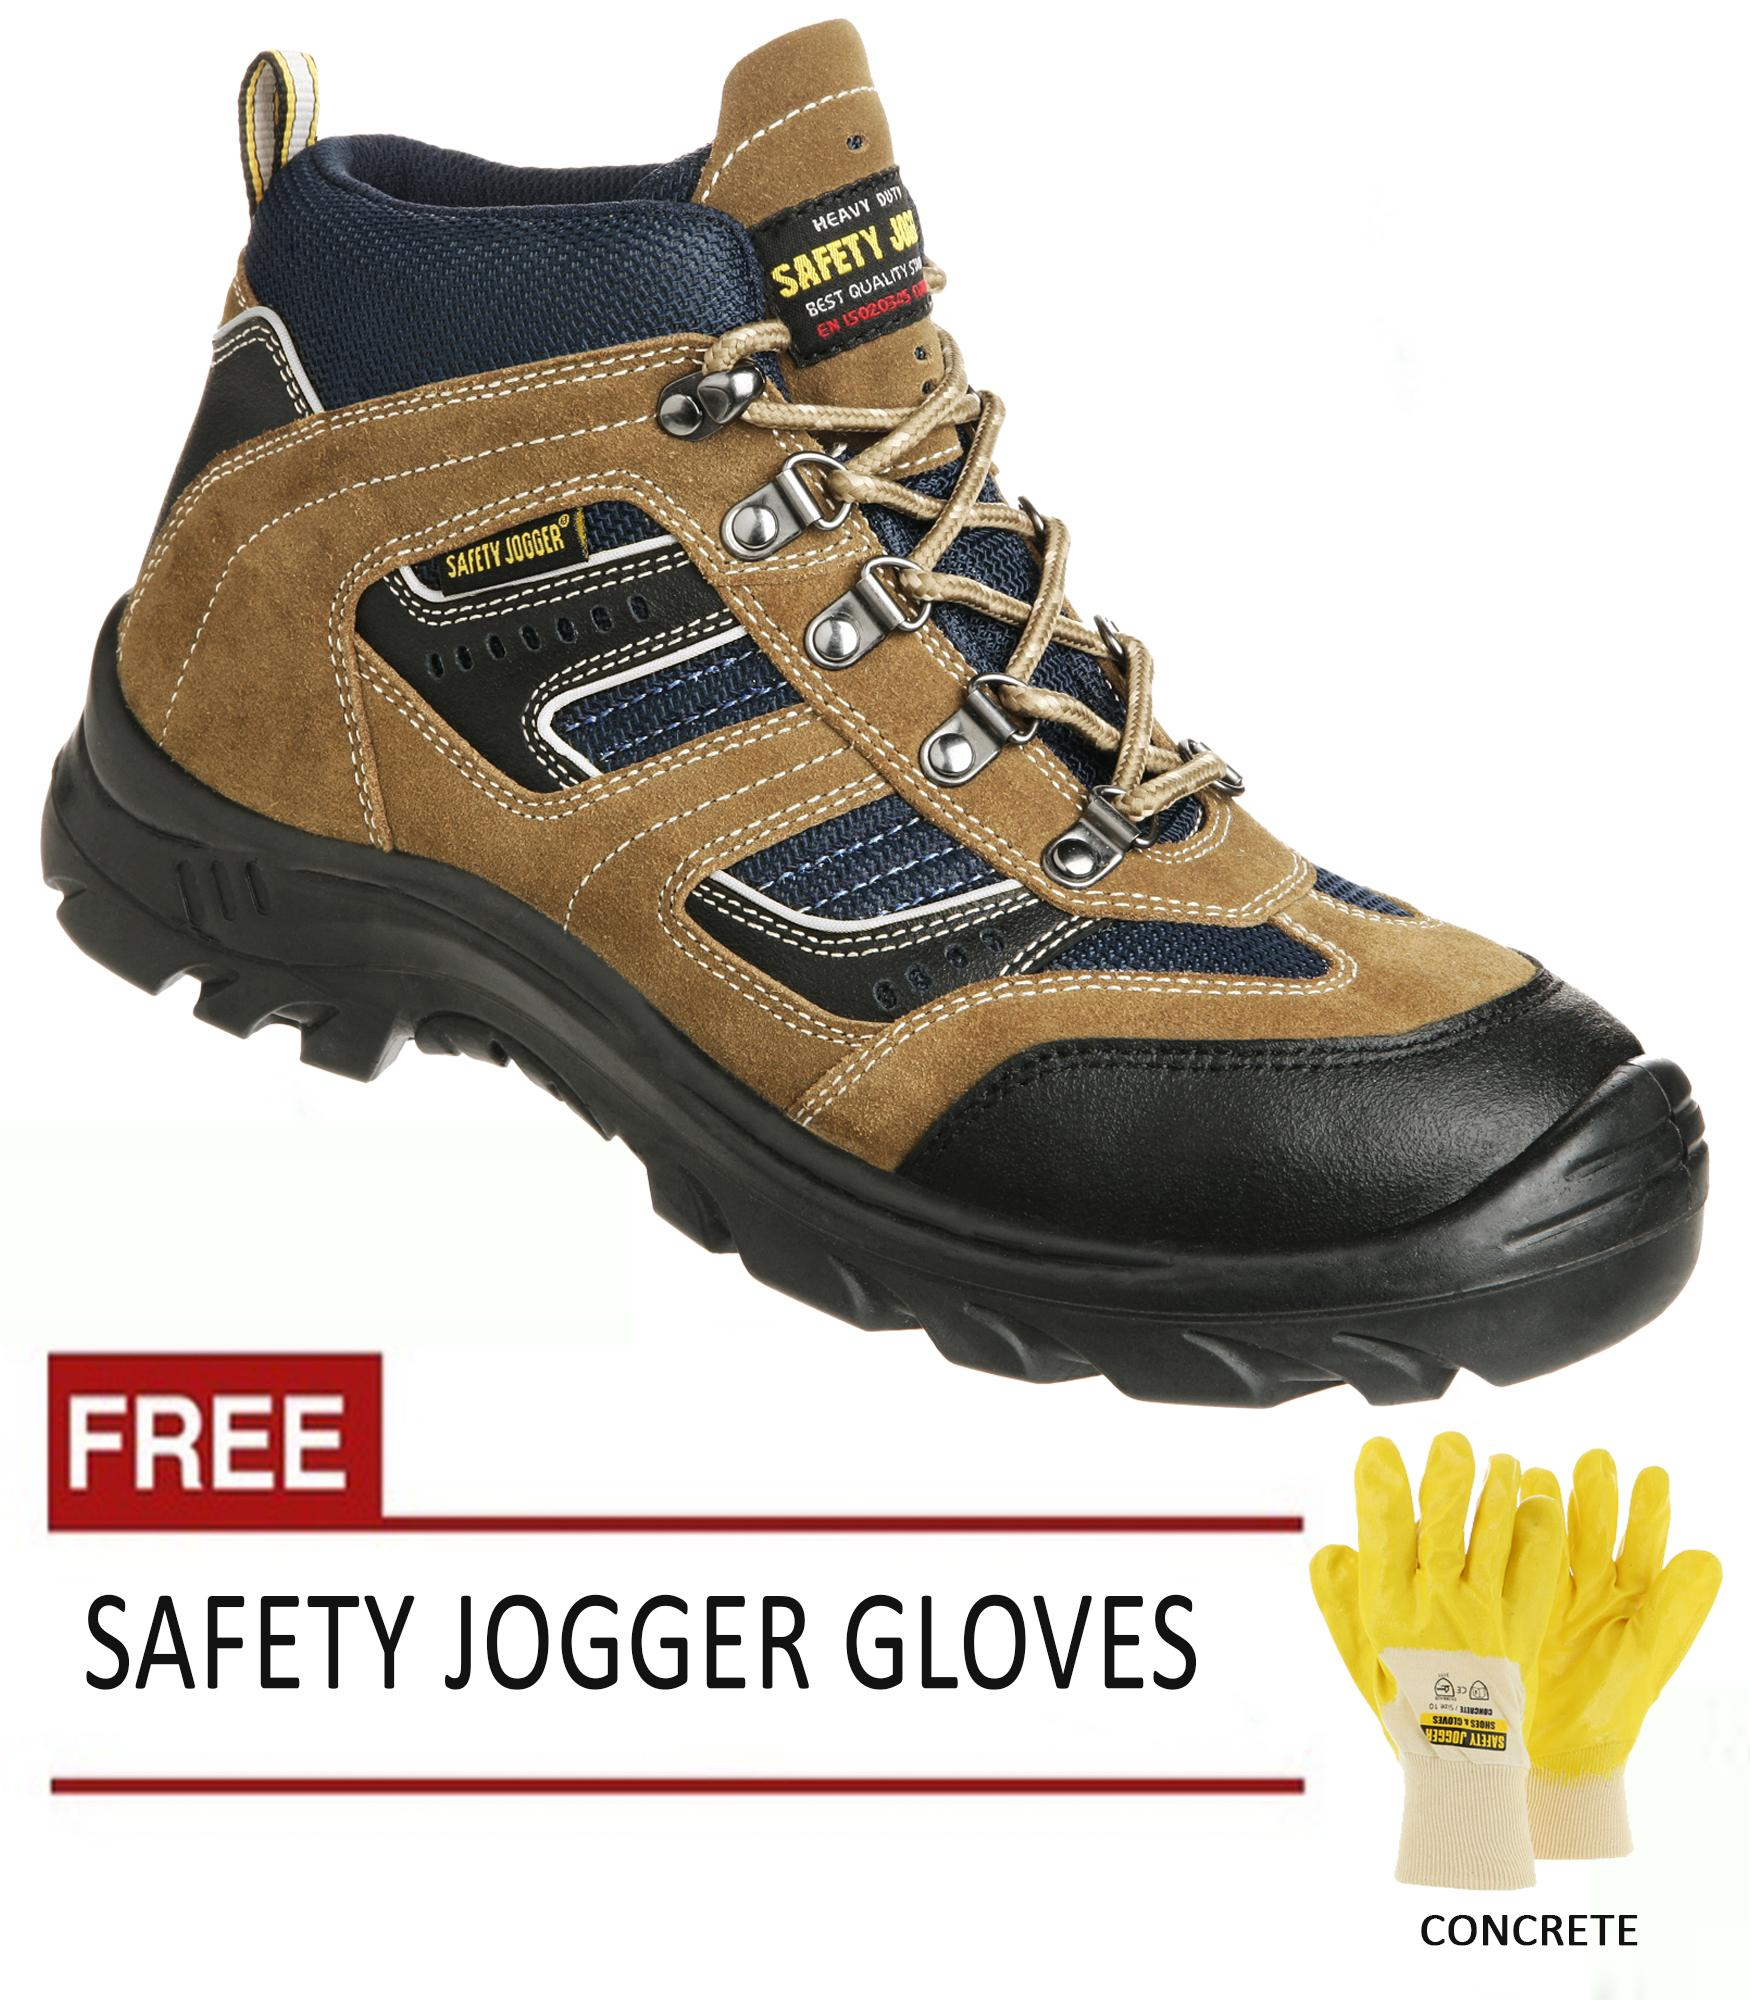 Safety Jogger X2000 S3 High Cut Safety Shoes For Men Safety Footwear Steel Toe (brown) With Free Safety Jogger Gloves (concrete) By Trisco.